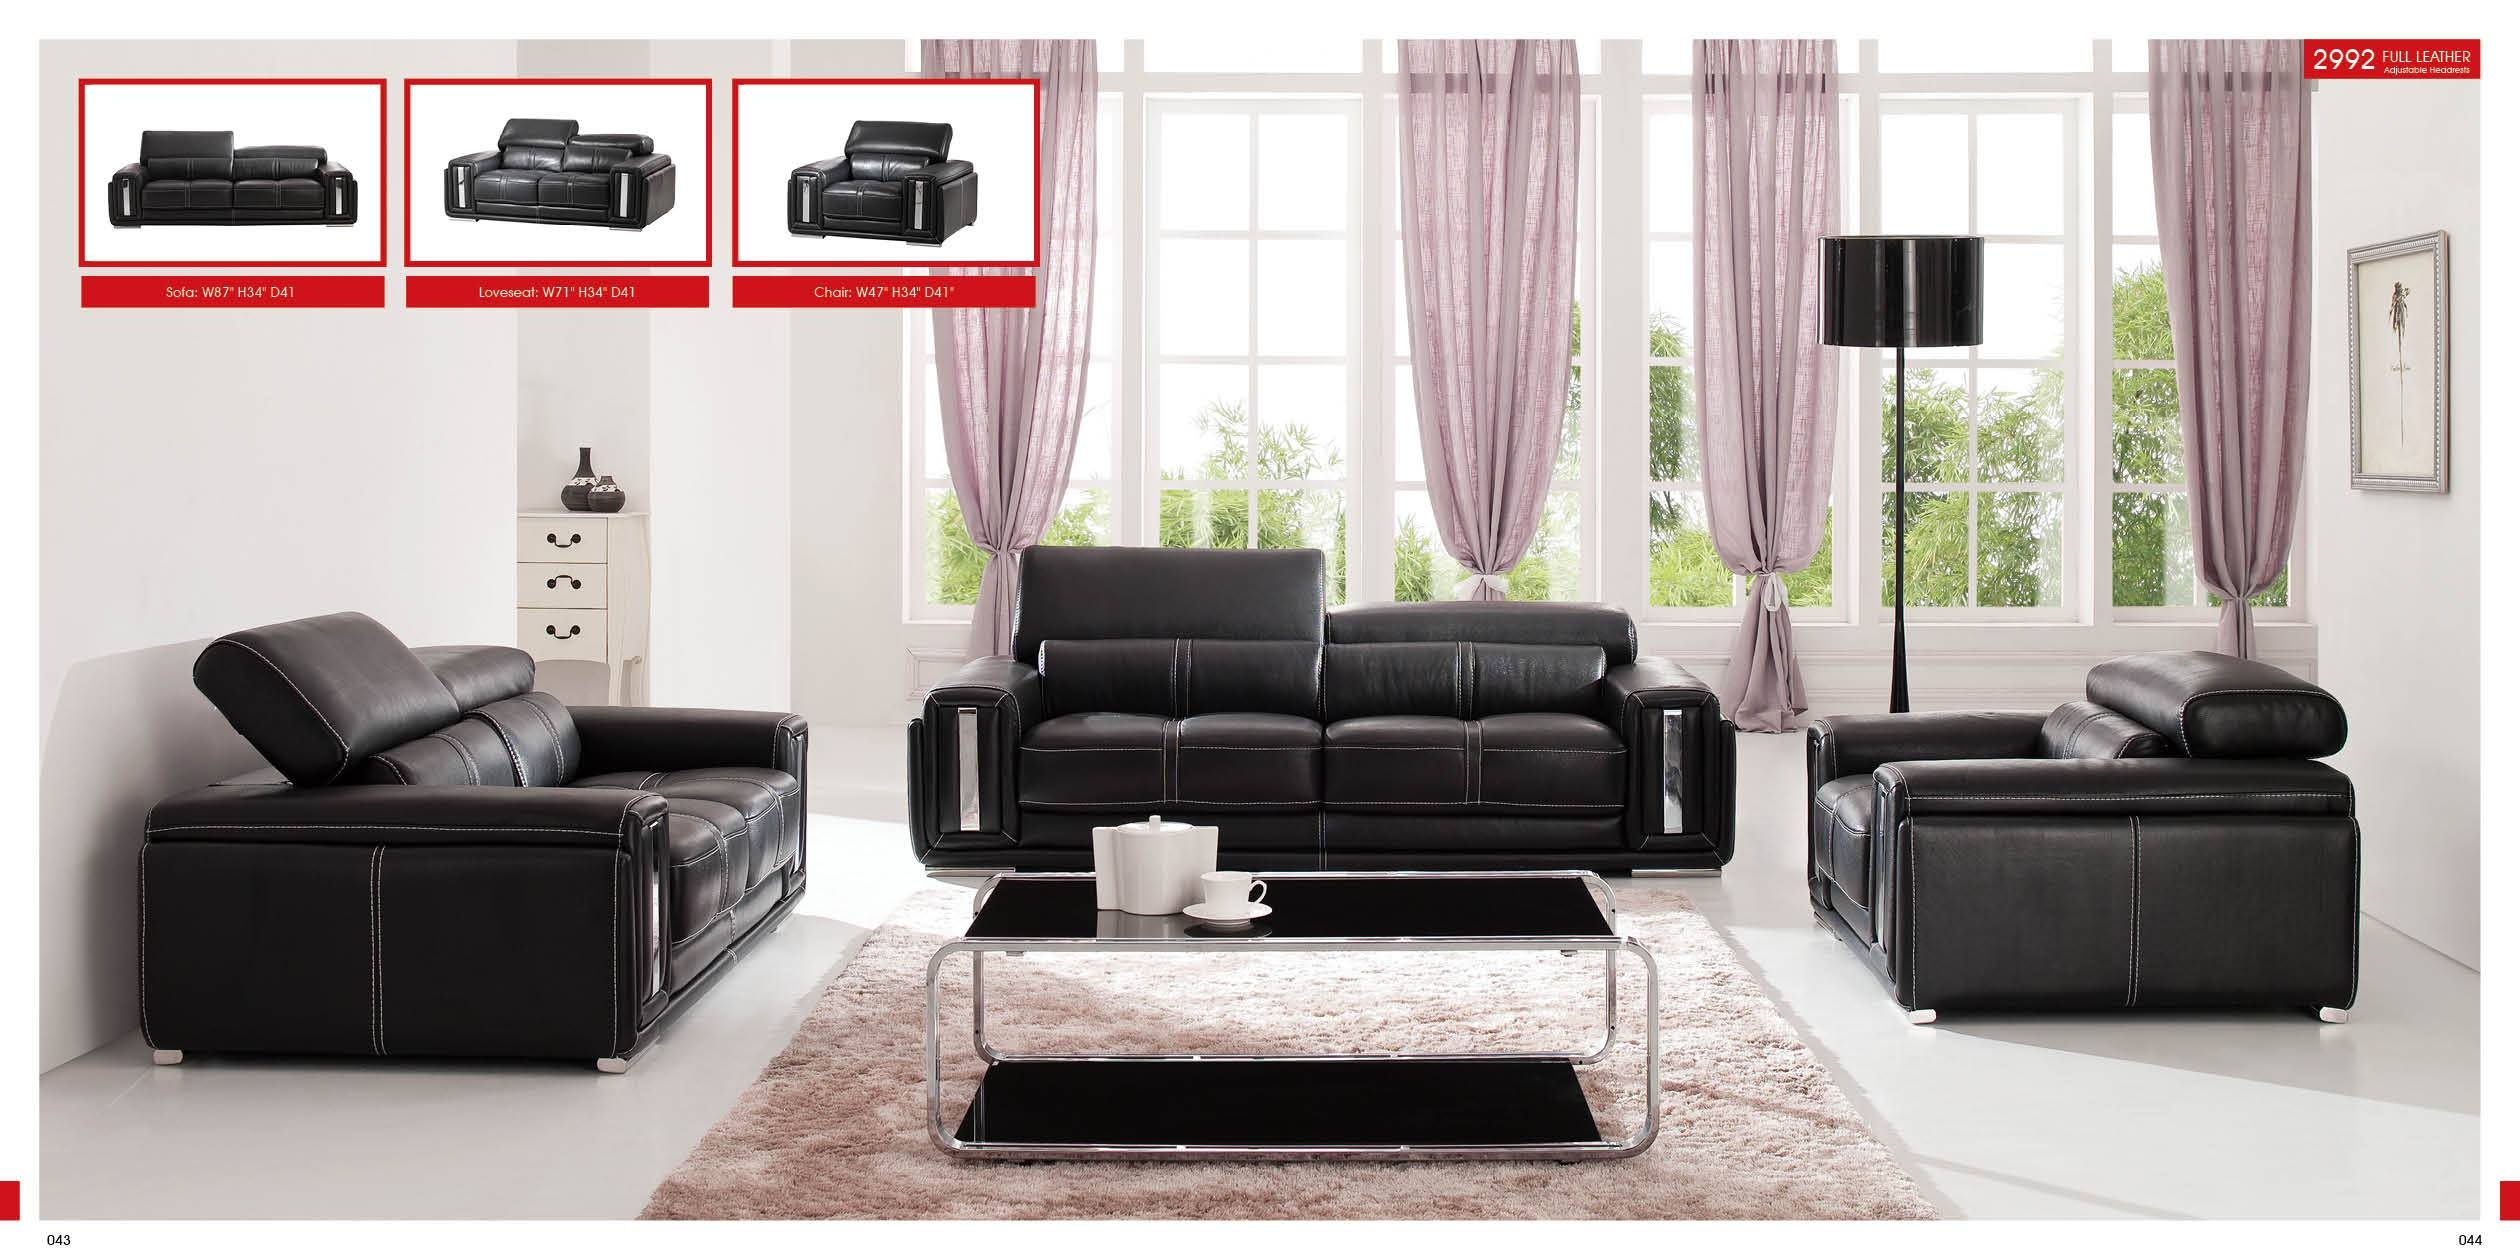 Black Leather Living Room Furniture Bonded Sofa And Loveseat Color intended for Living Room Sofa Chairs (Image 3 of 15)